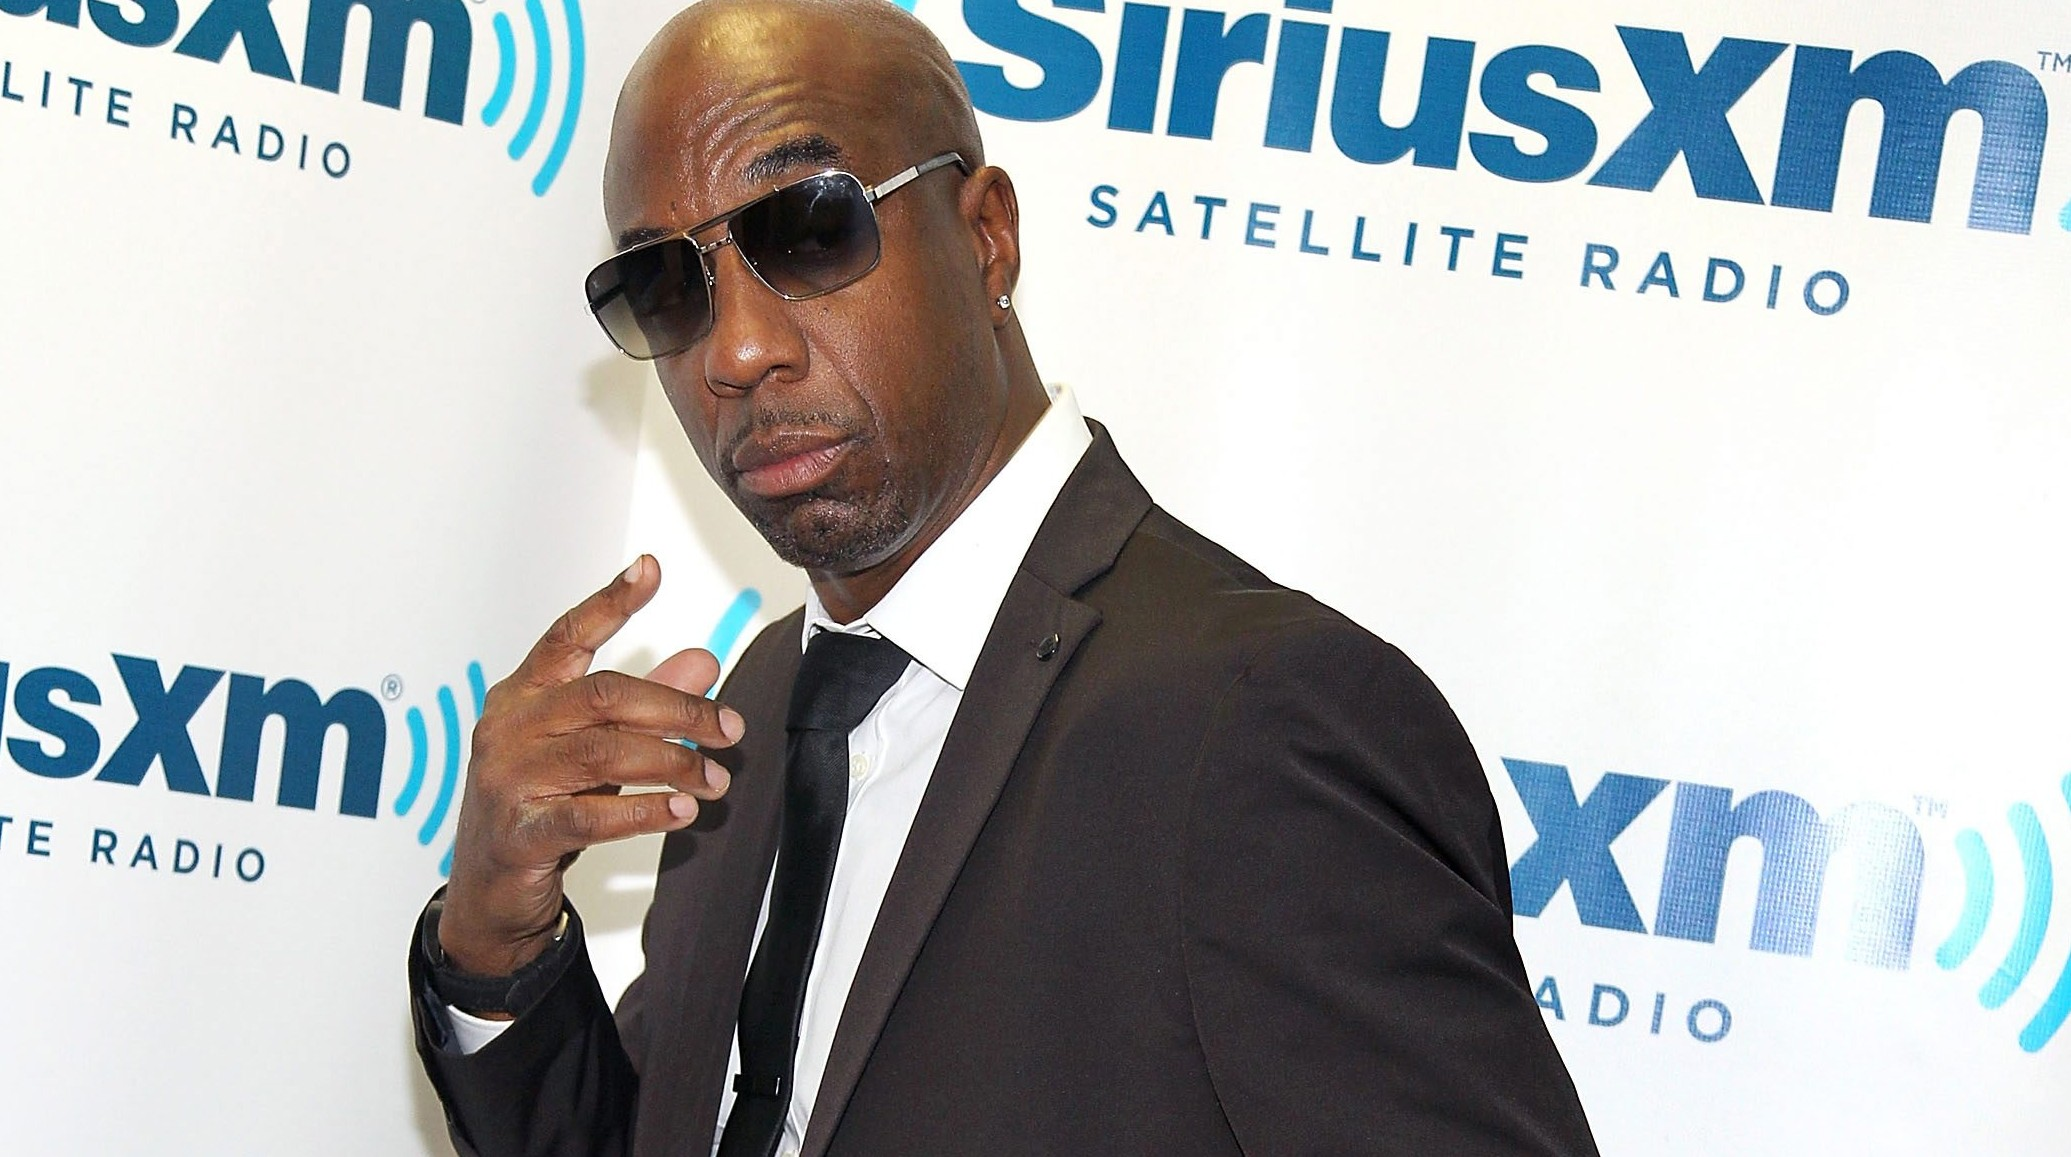 J.B. Smoove in studio during Jenny McCarthy's SiriusXM Show 'Dirty, Sexy, Funny With Jenny McCarthy' live from The SiriusXM Studios In Los Angeles on February 27, 2015.  (Photo by Rachel Murray/Getty Images for SiriusXM)